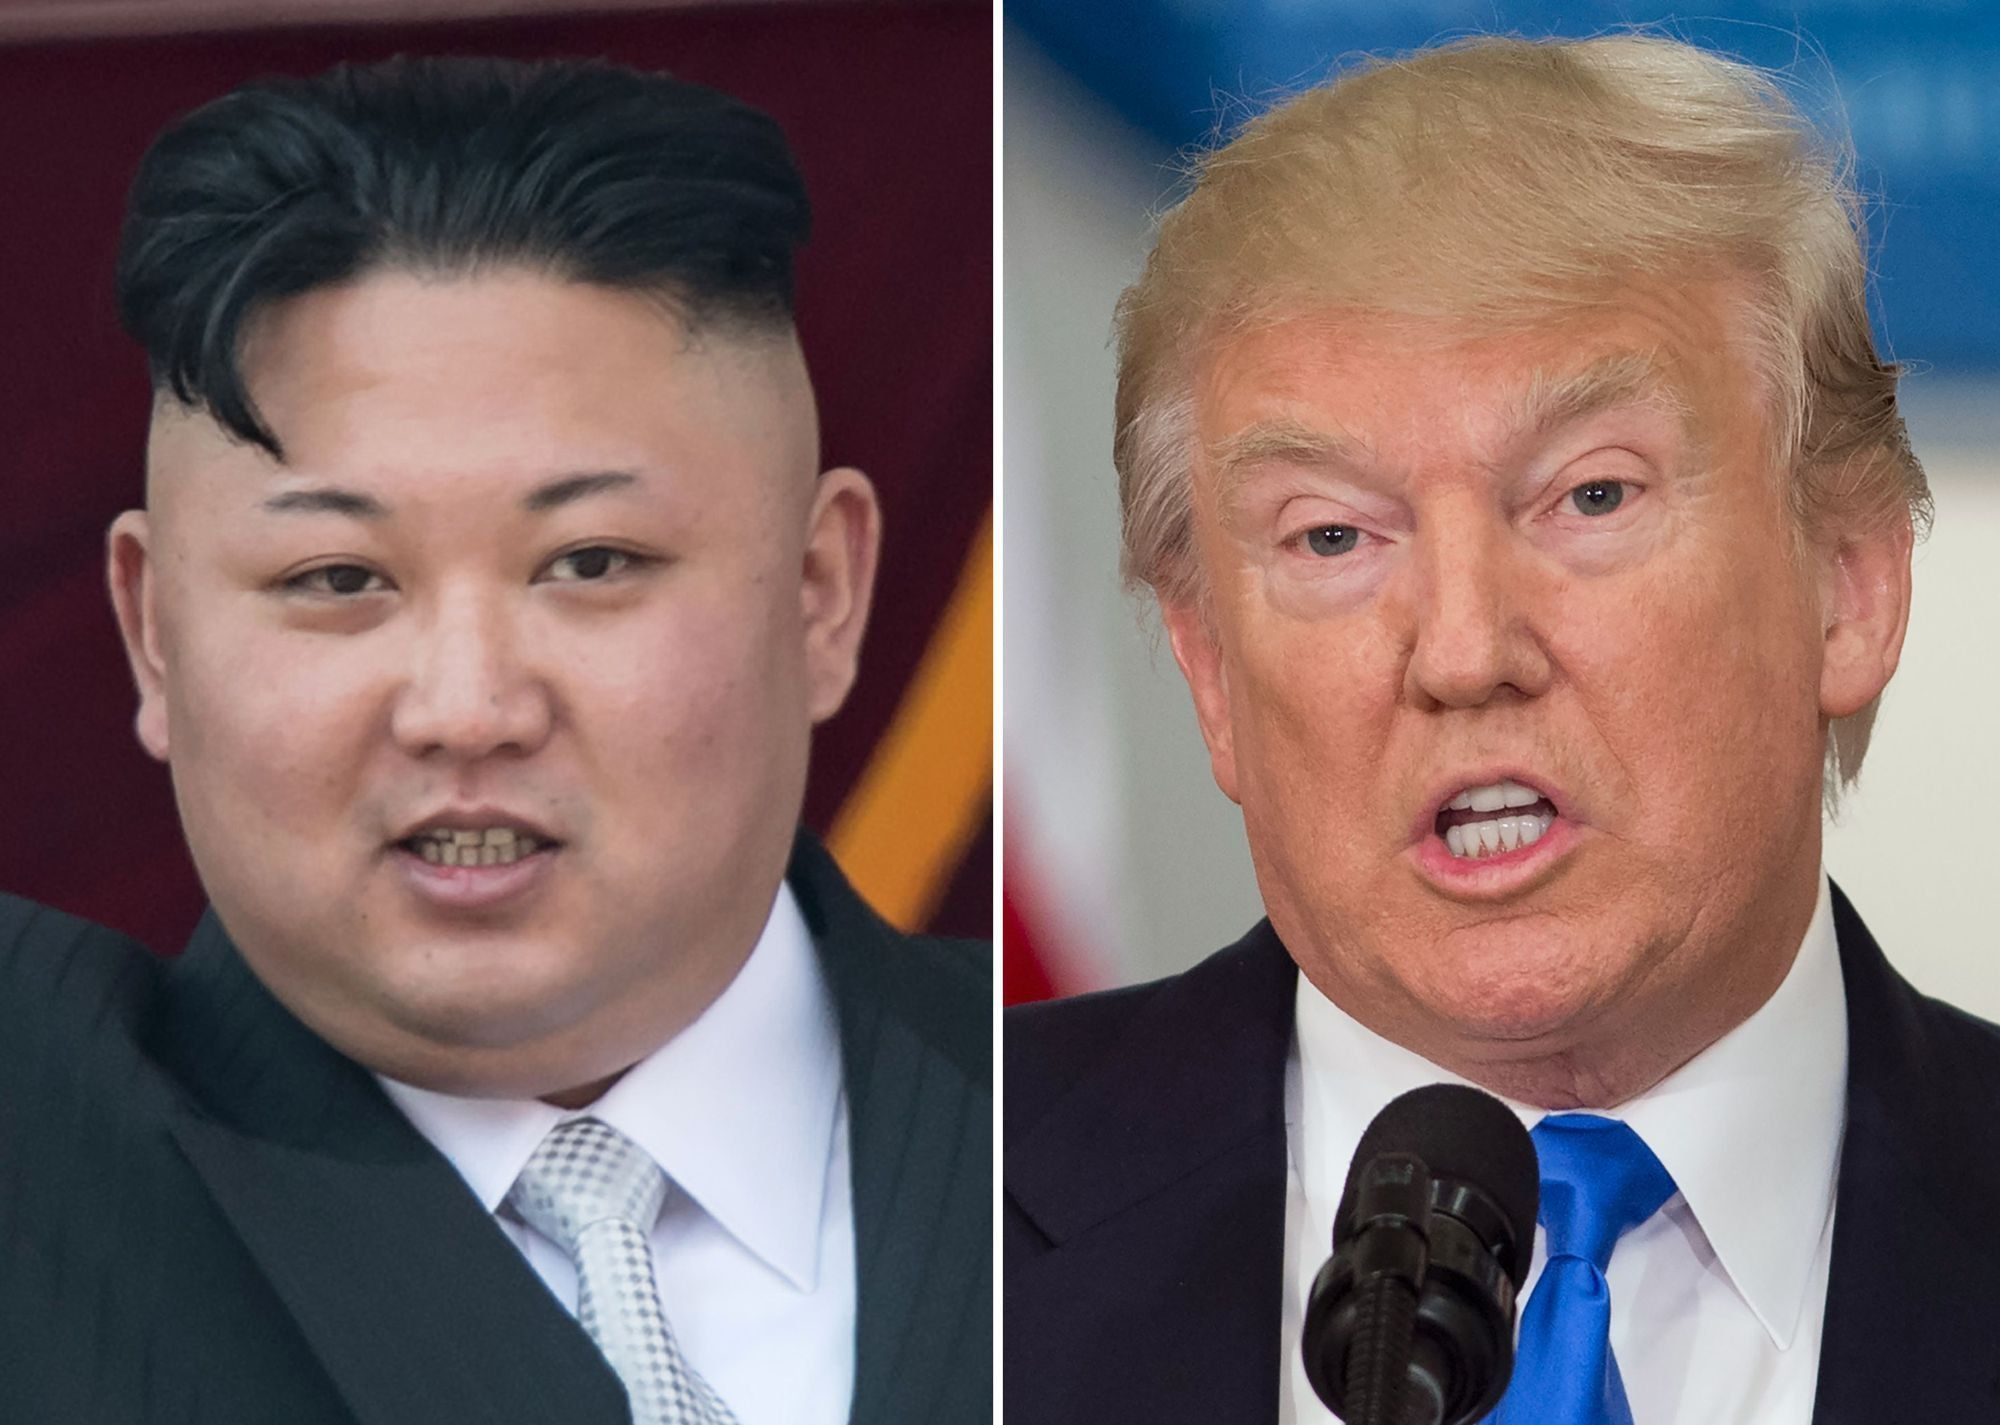 Trump On Summit With Kim Jong Un: 'This Isn't A Question Of Preparation'